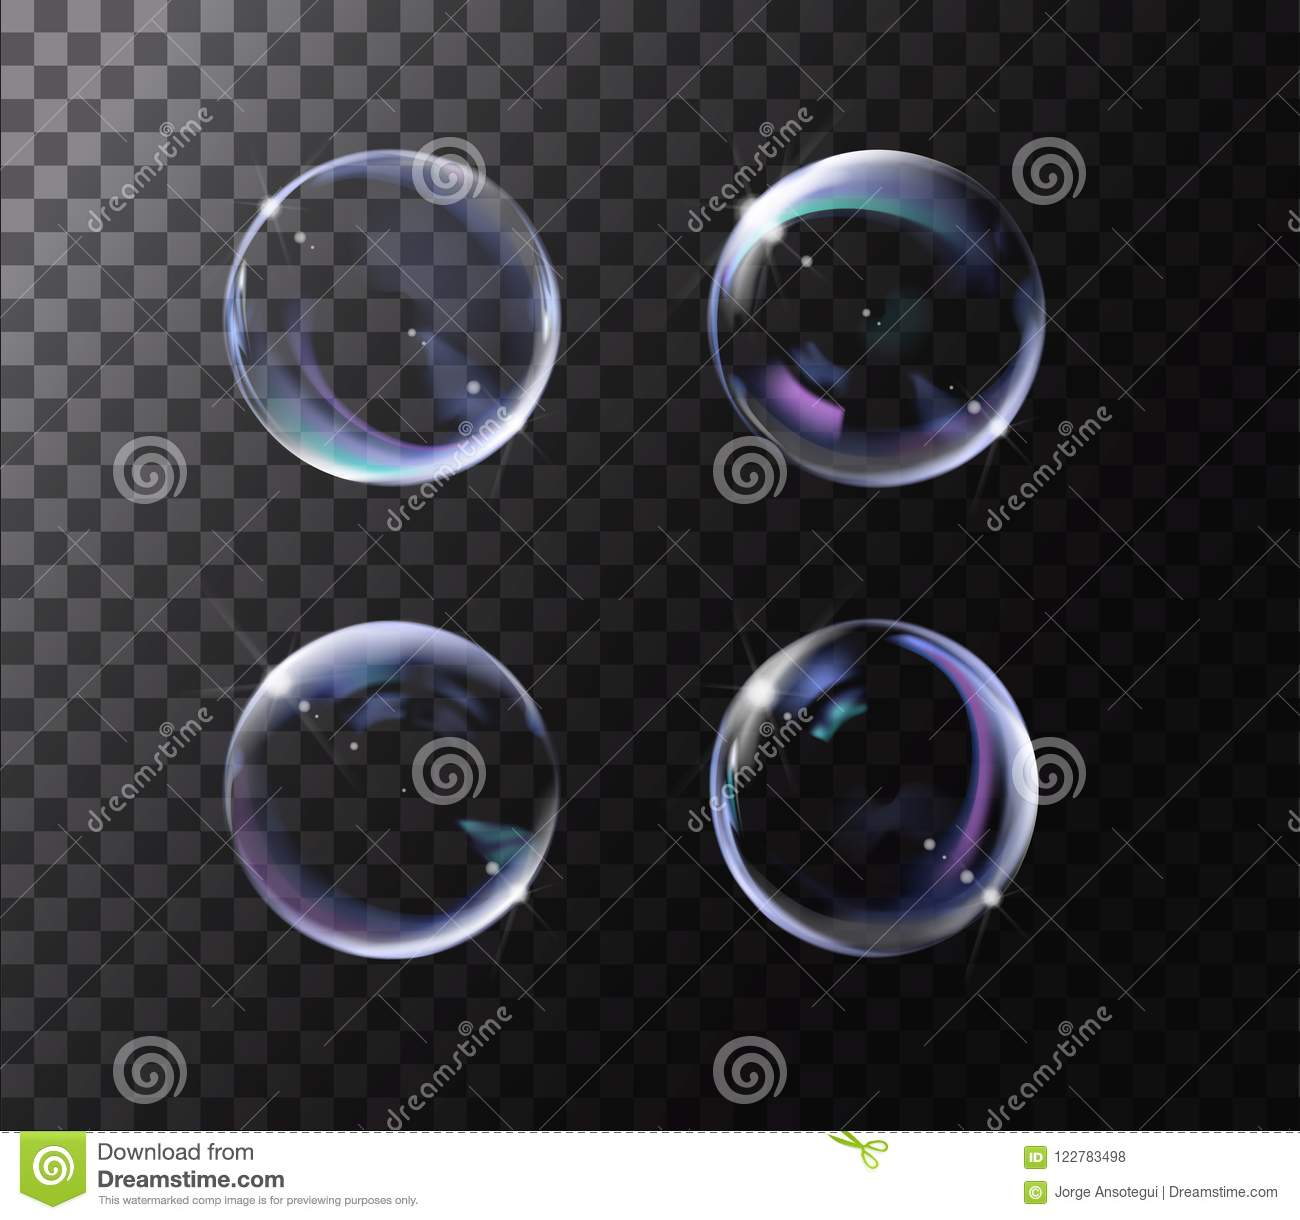 Realistic soap bubble with rainbow colors on black background.